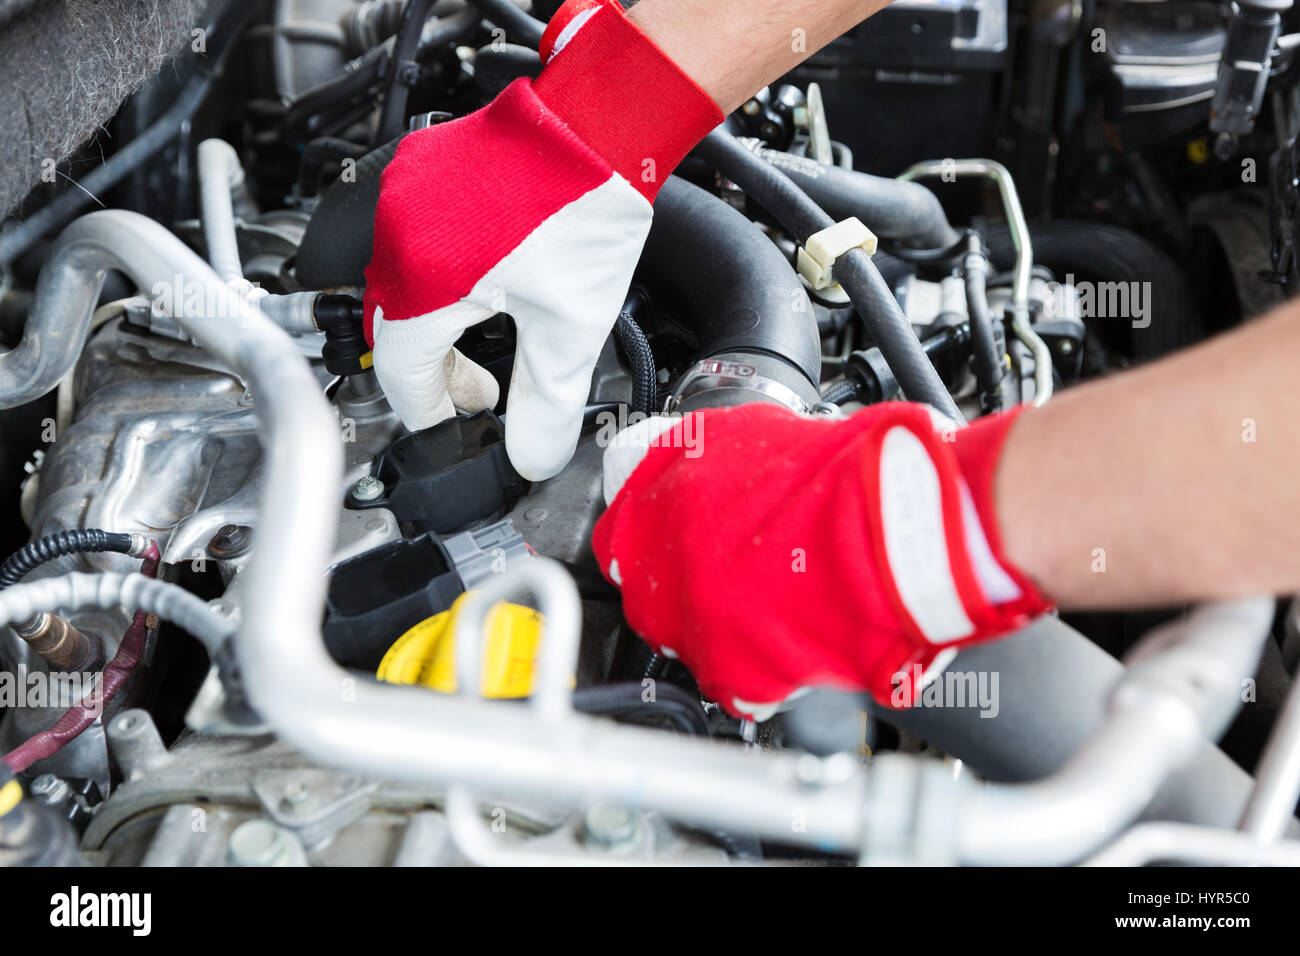 auto mechanic checking car engine spark plug wires Stock Photo ... on spark plugs on, spark plugs for dodge hemi, spark screen, short circuit wires, spark plugs 2003 dakota, spark plugs awsf 32pp, spark ignition, spark plugs for toyota corolla, spark plugs replacement, ignition wires, coil wires, spark pug, spark plugs location diagram, spark indicator, spark plugs 2006 pacifica, wire separators for 8mm wires, gas grill ignitor wires, spark up meaning, plugs and wires, spark plugs brands,